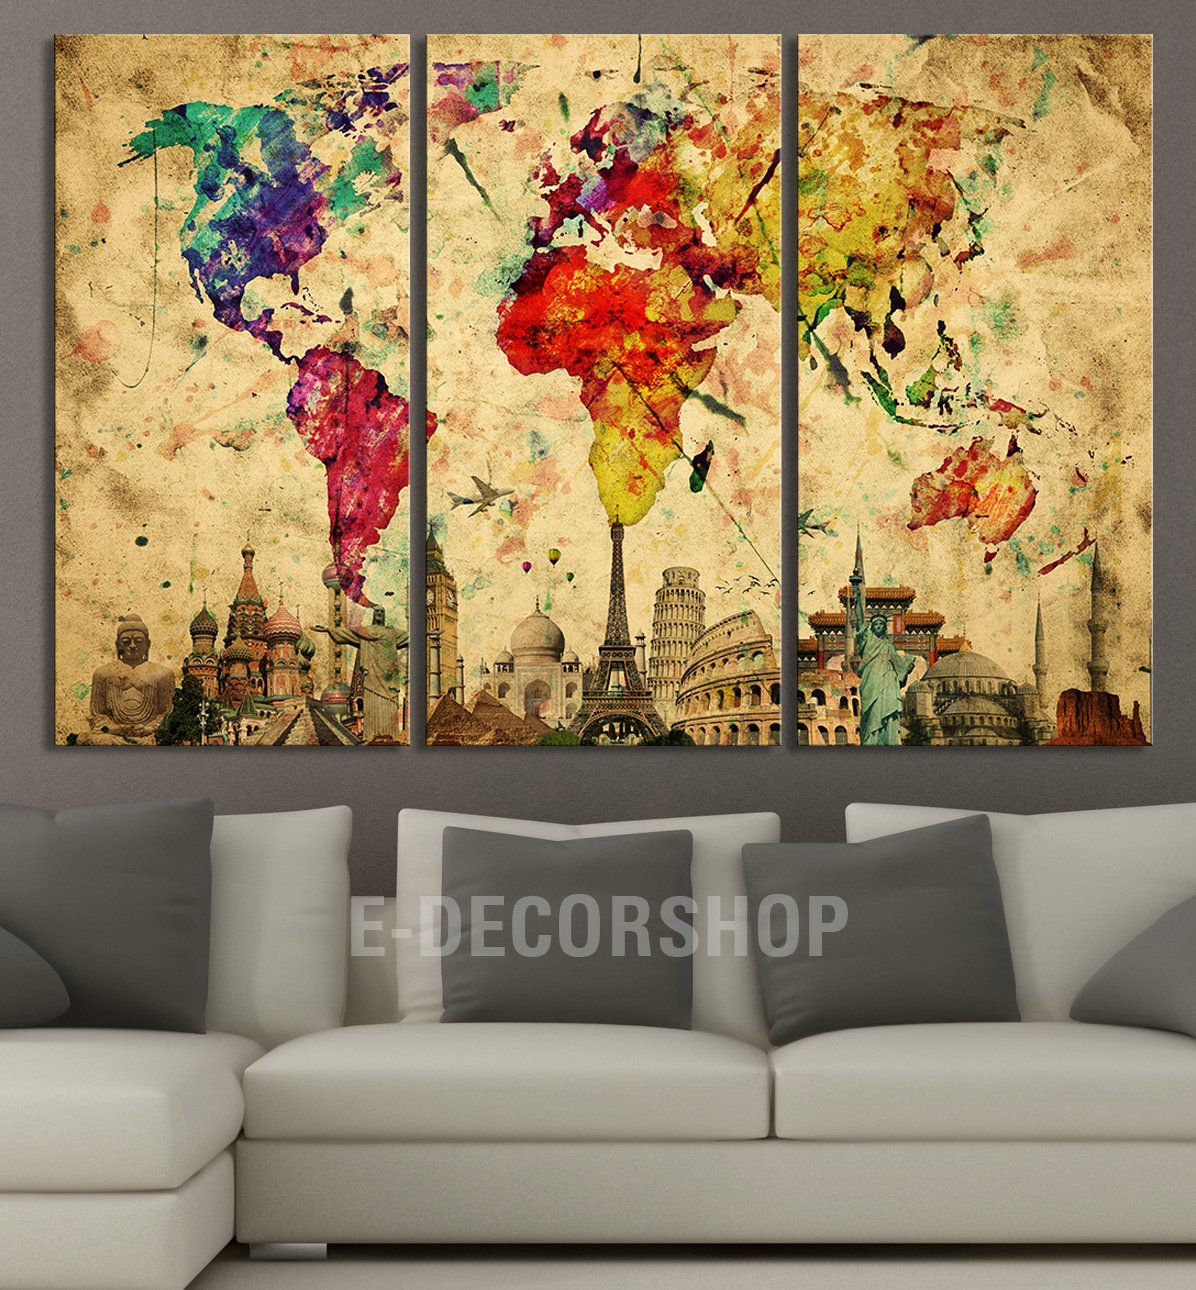 Amazon.com: Large Wall Art Canvas World Map - Yellow Predominantly ...